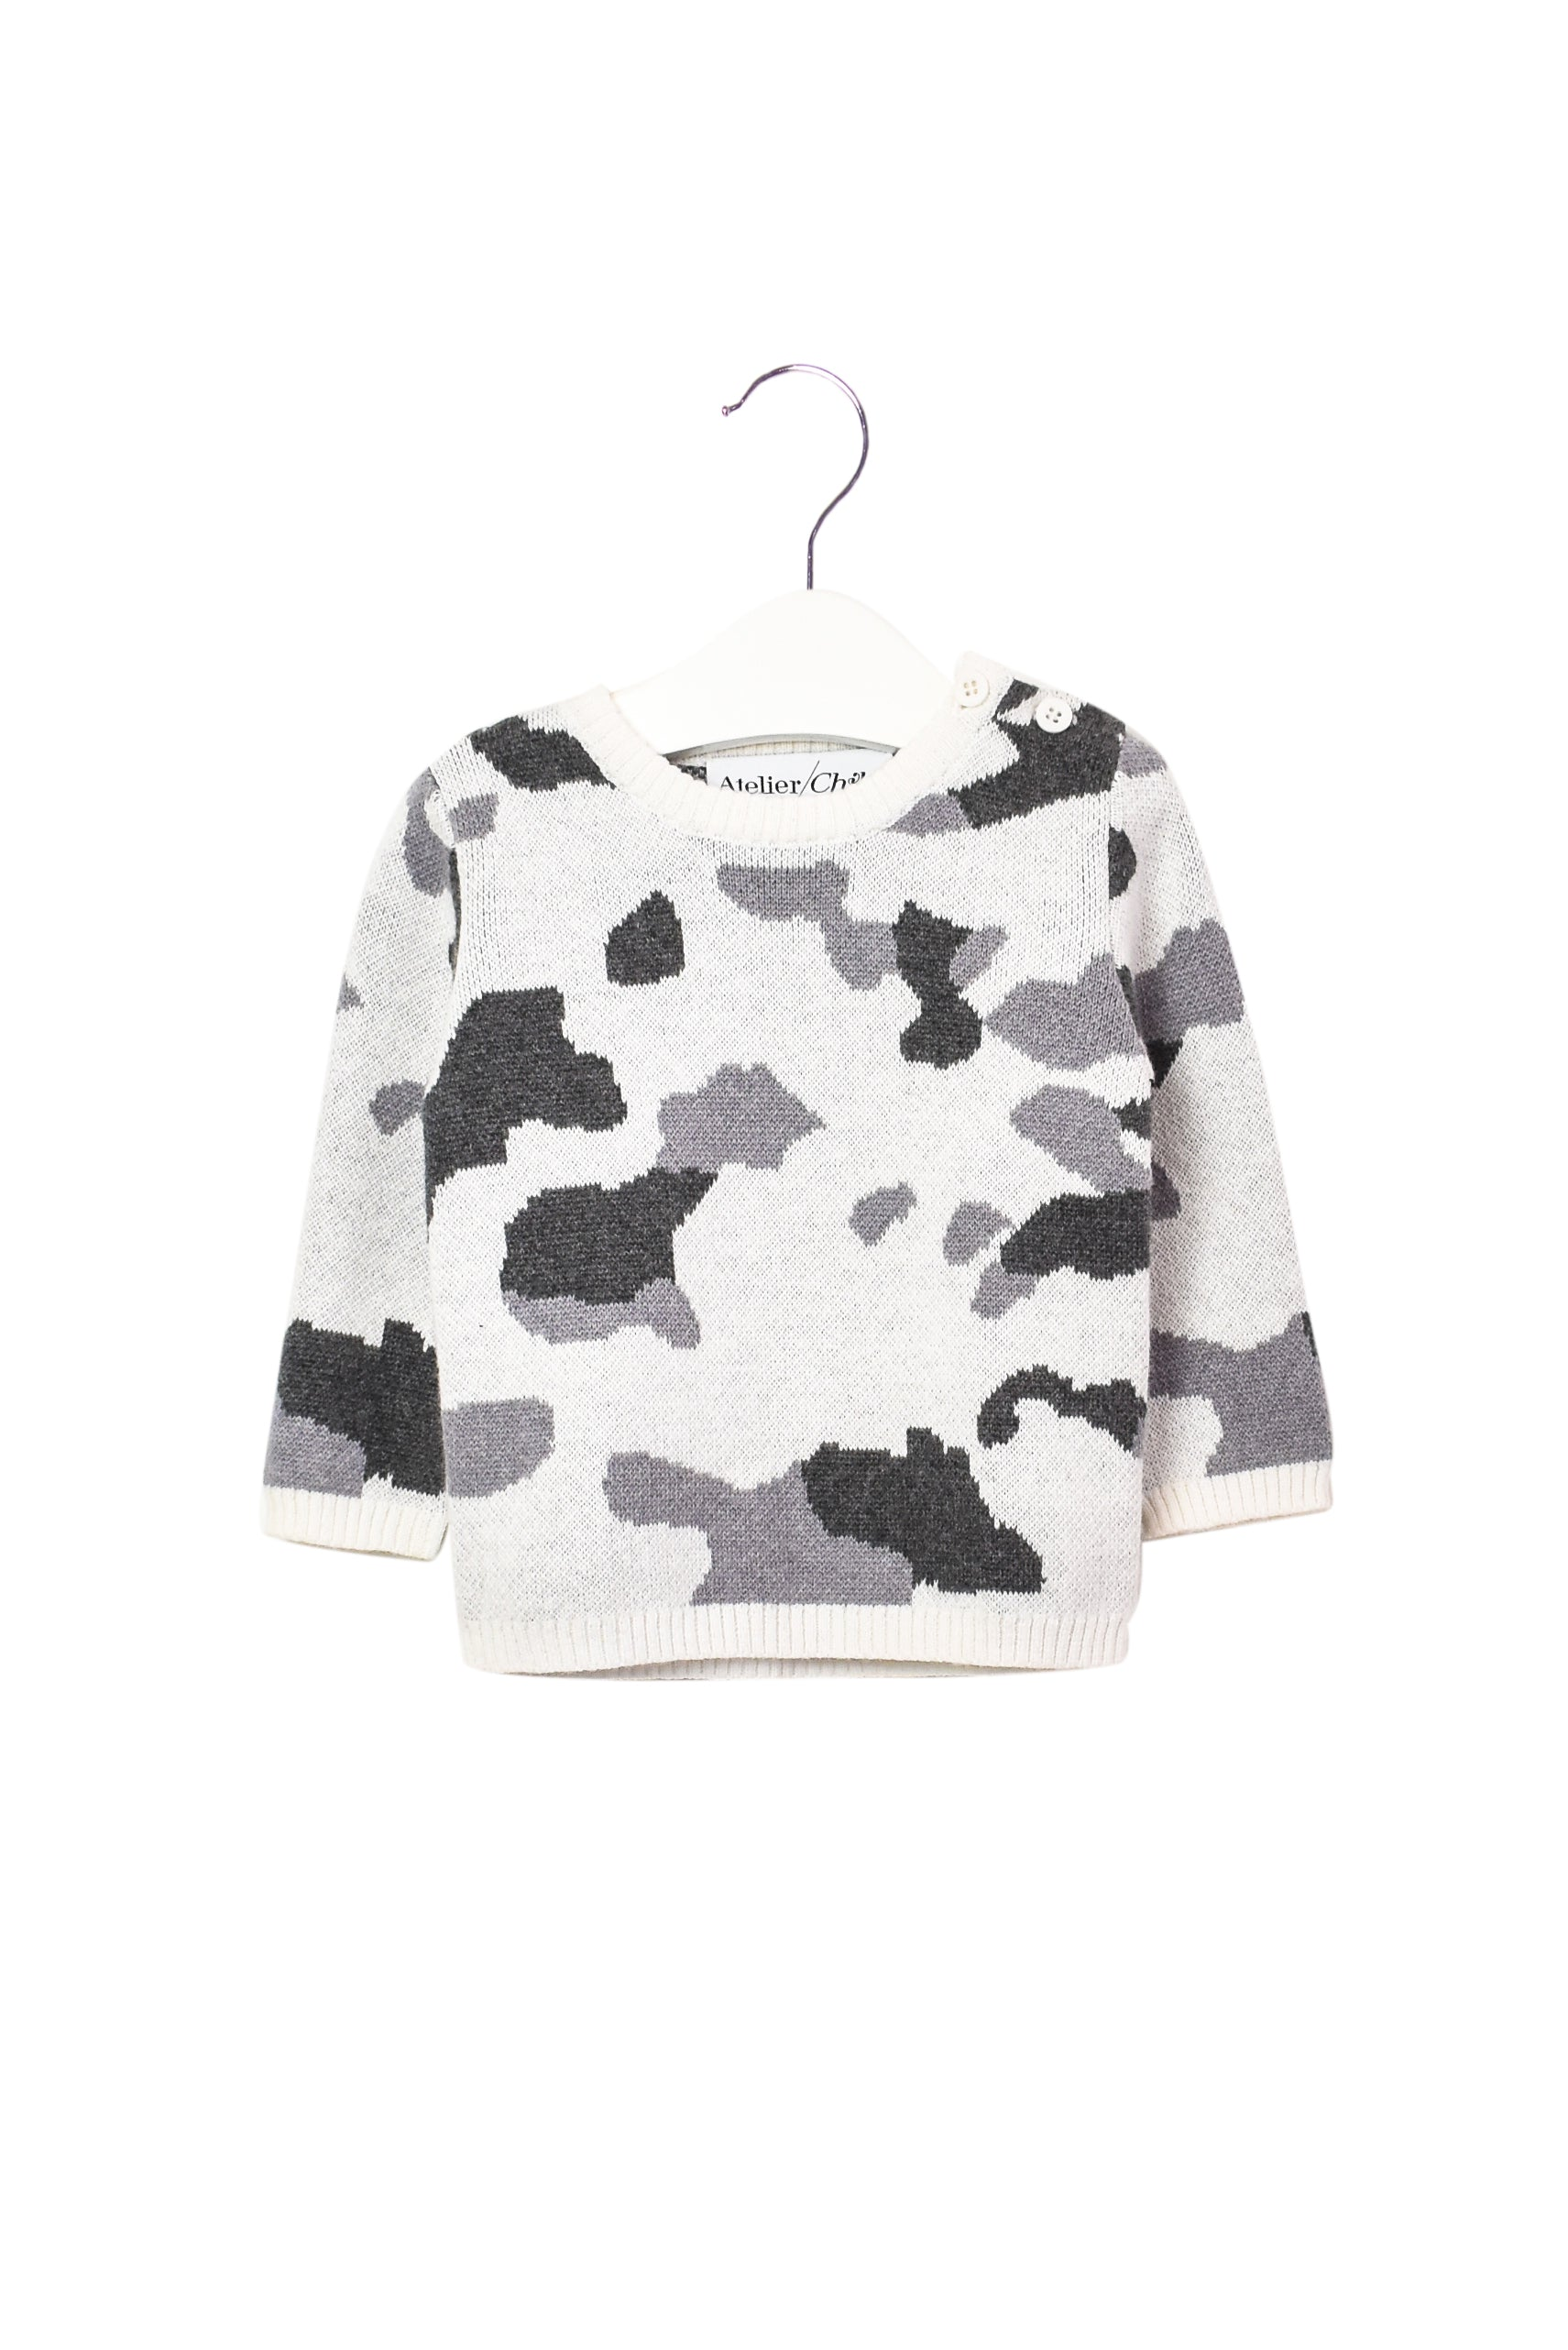 10007590 Atelier Child Kids~Sweater 1-5T at Retykle